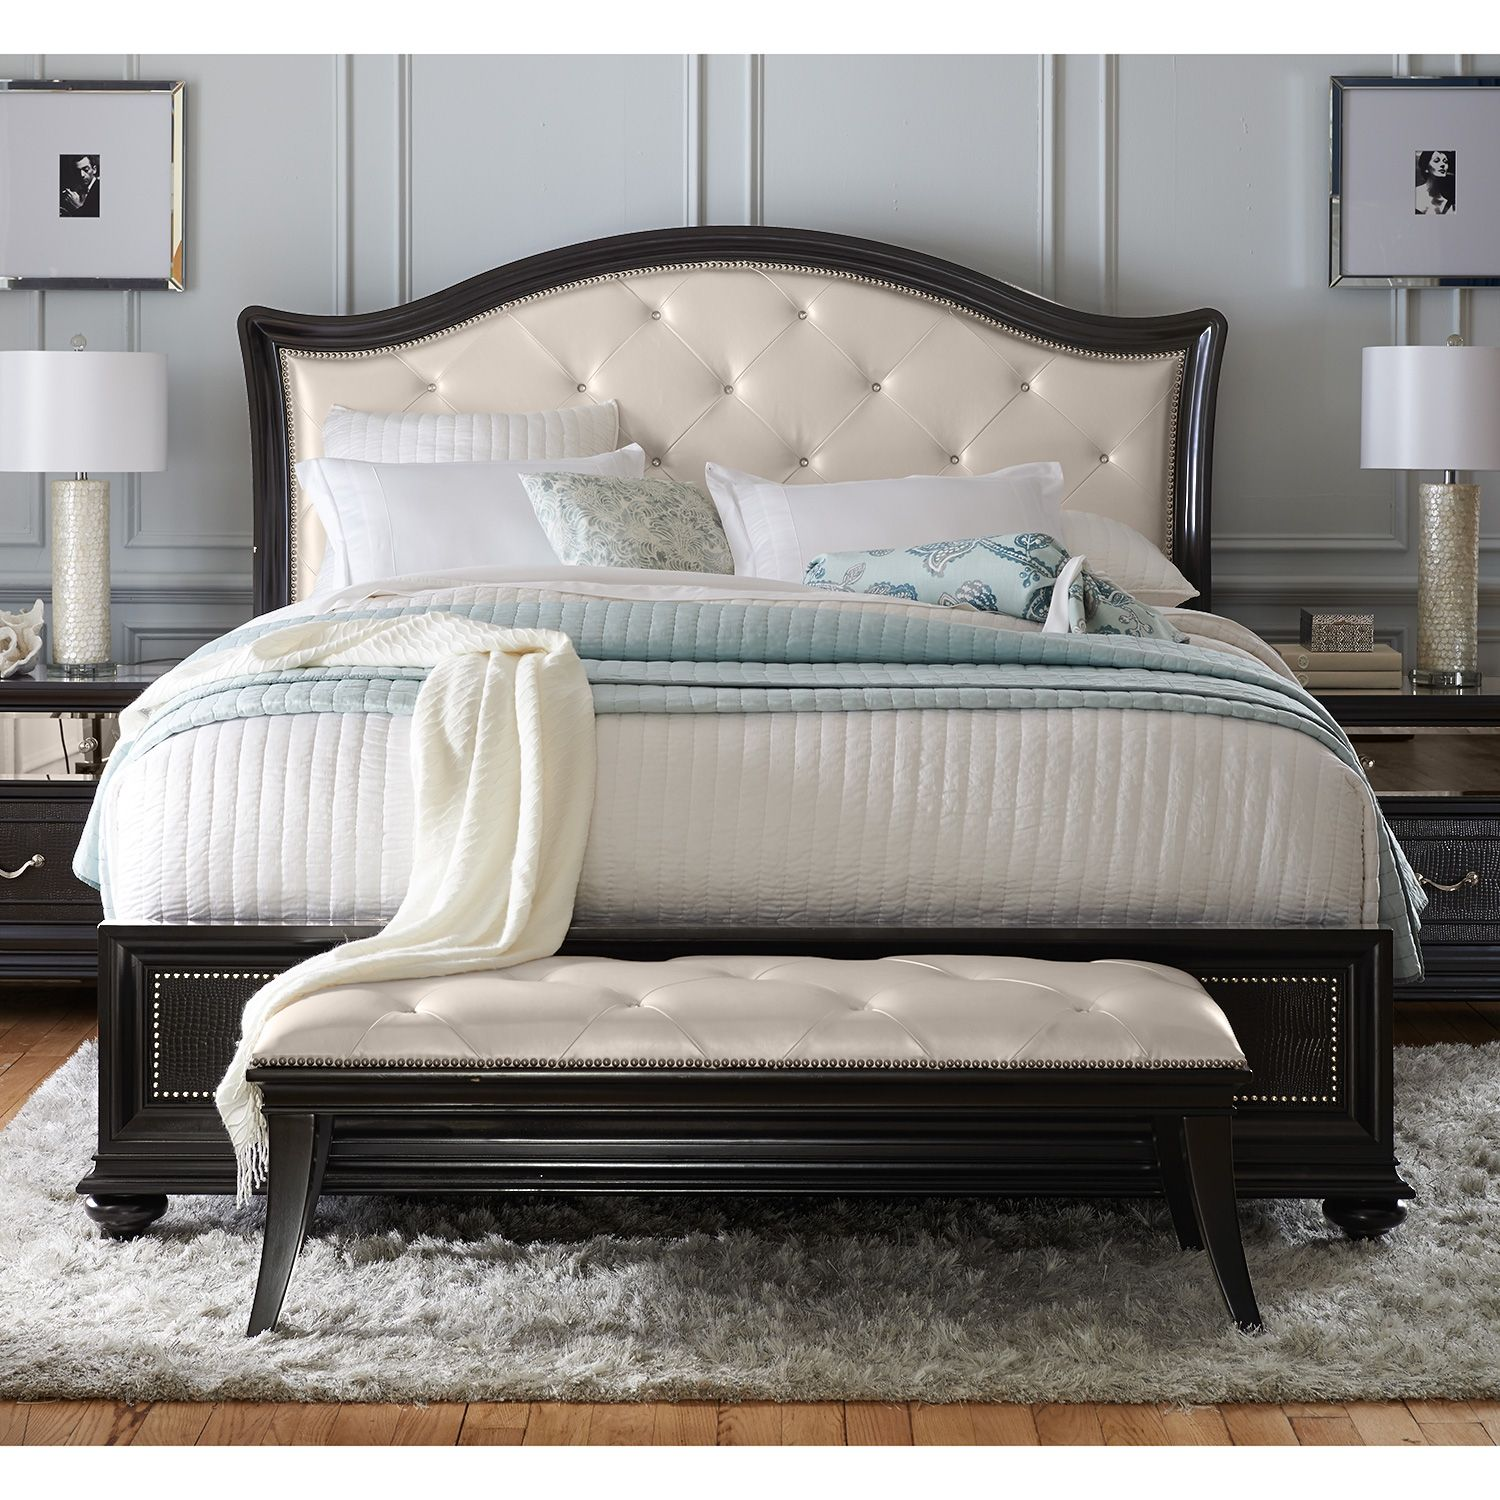 Marilyn Bedroom Queen Bed   Value City Furniture